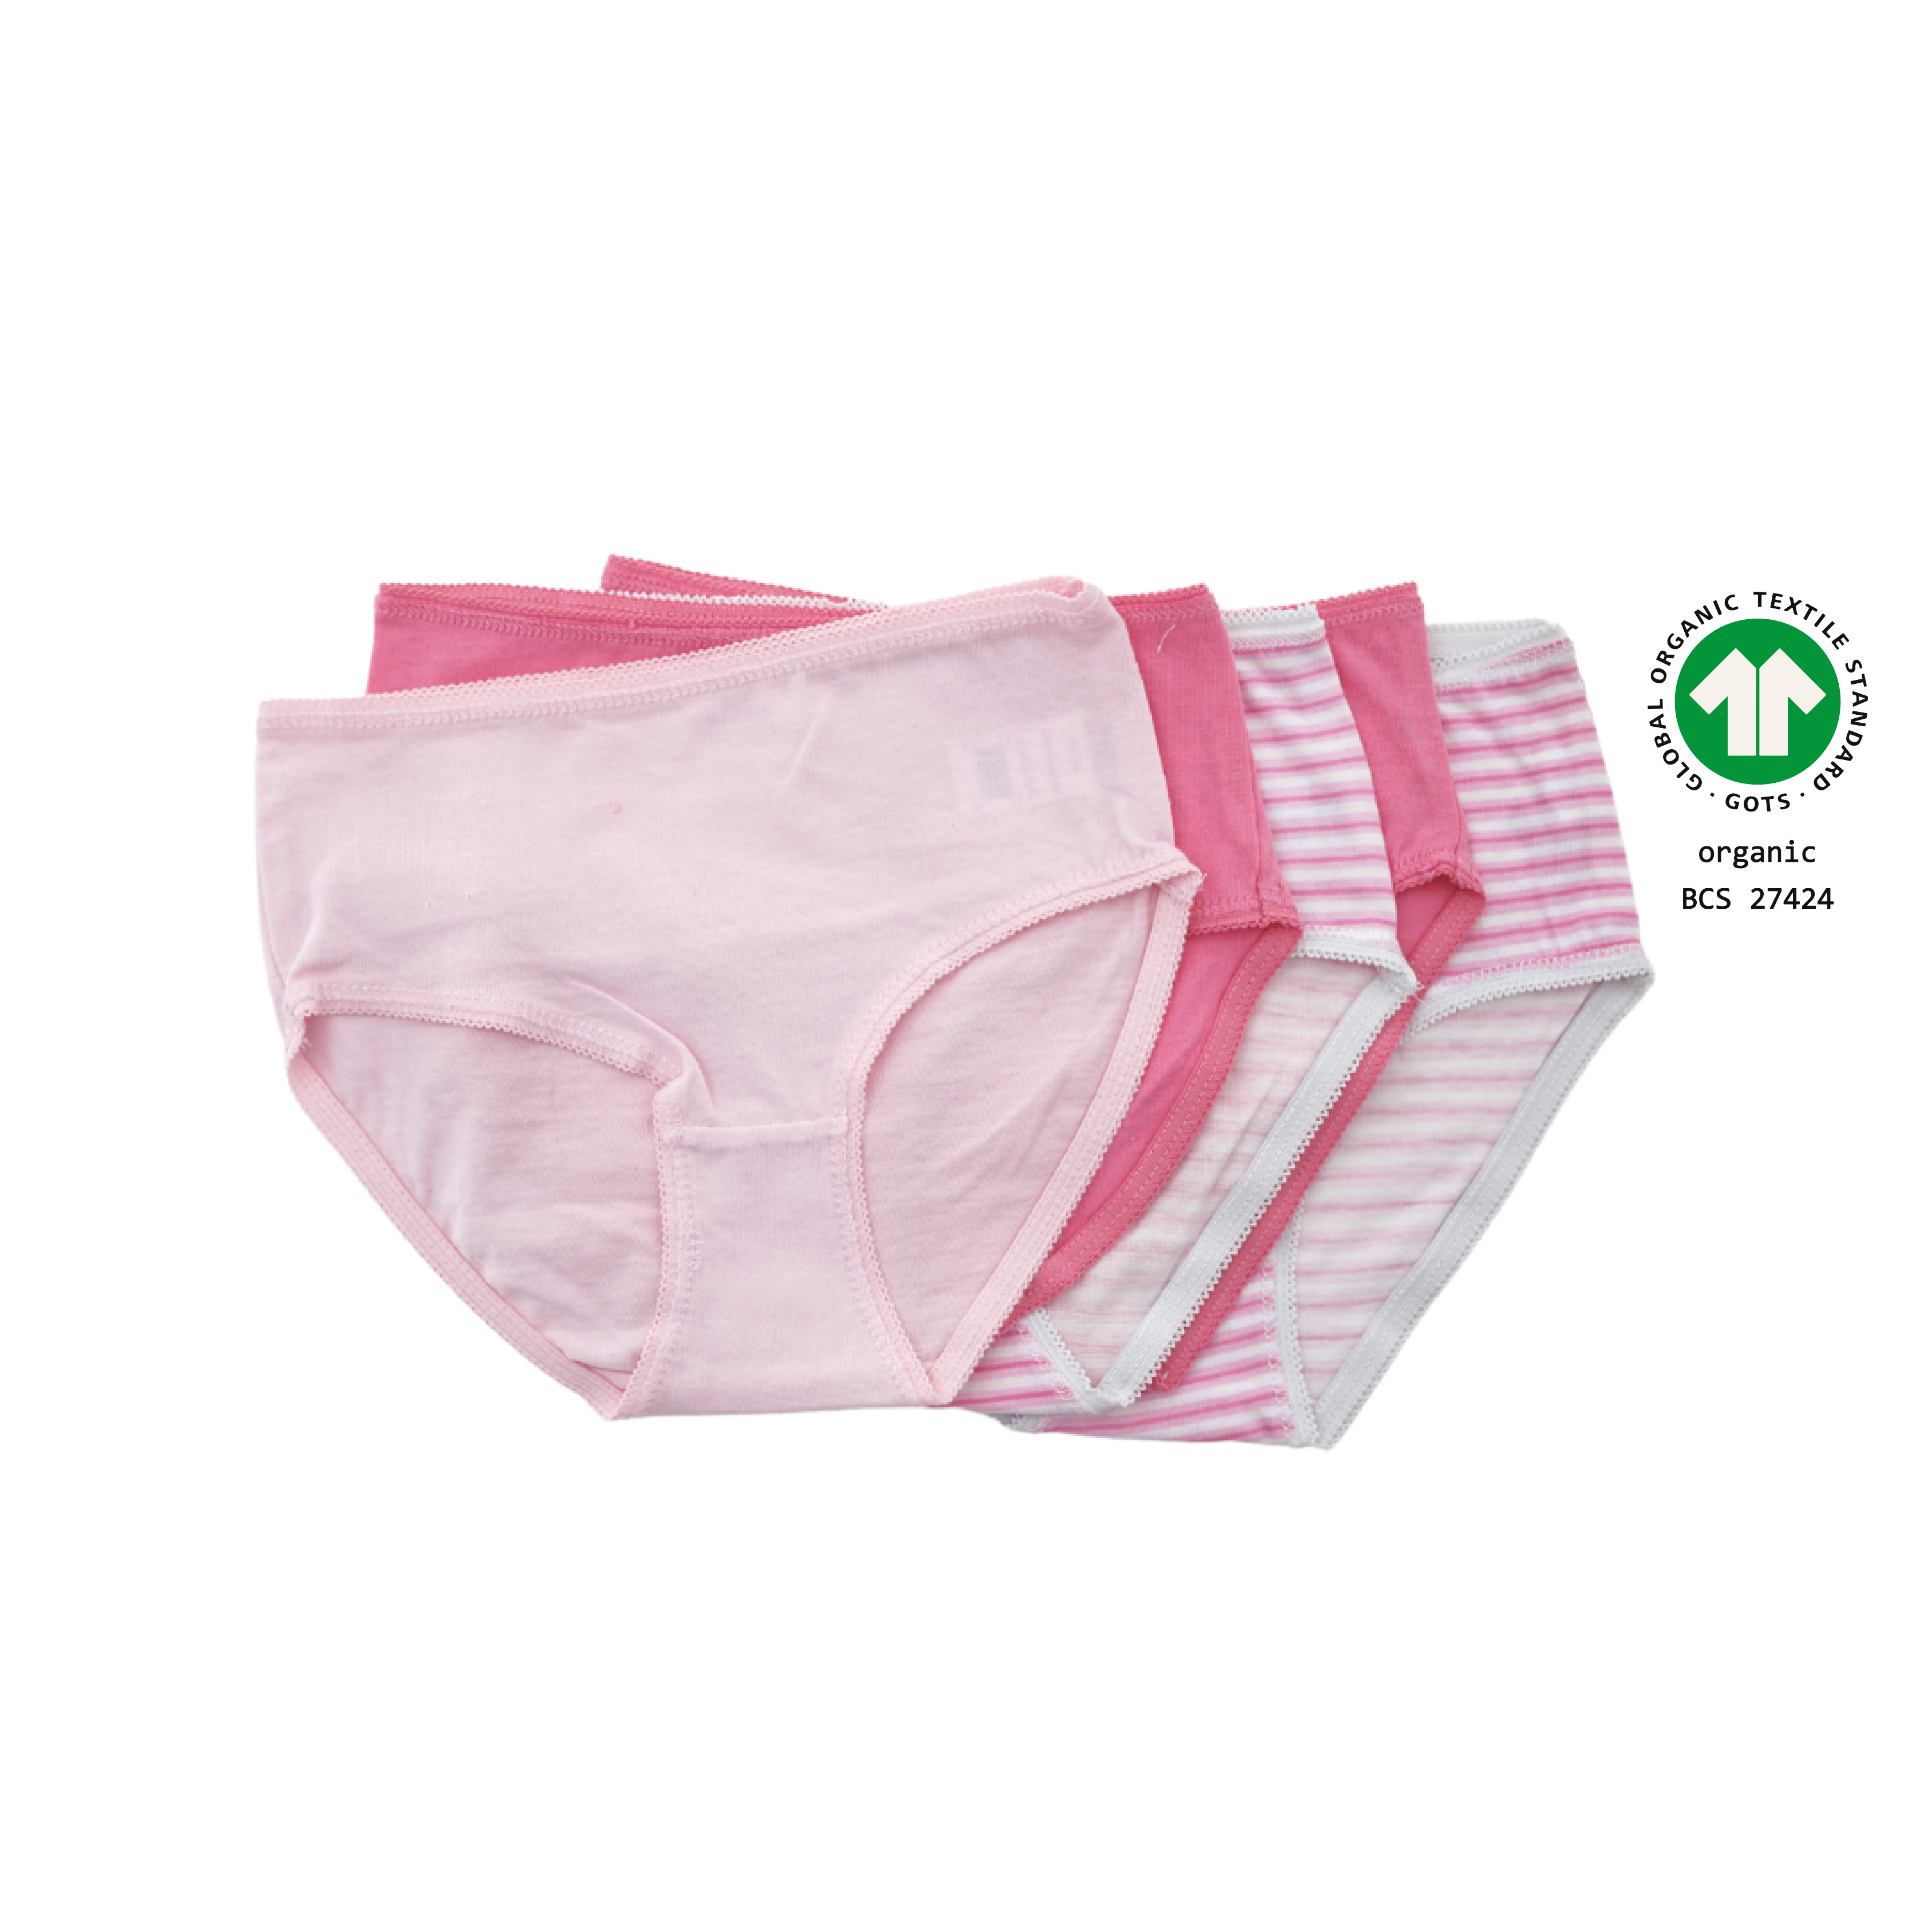 North Dept. Girl Slip - 5er Pack Bio Baumwolle